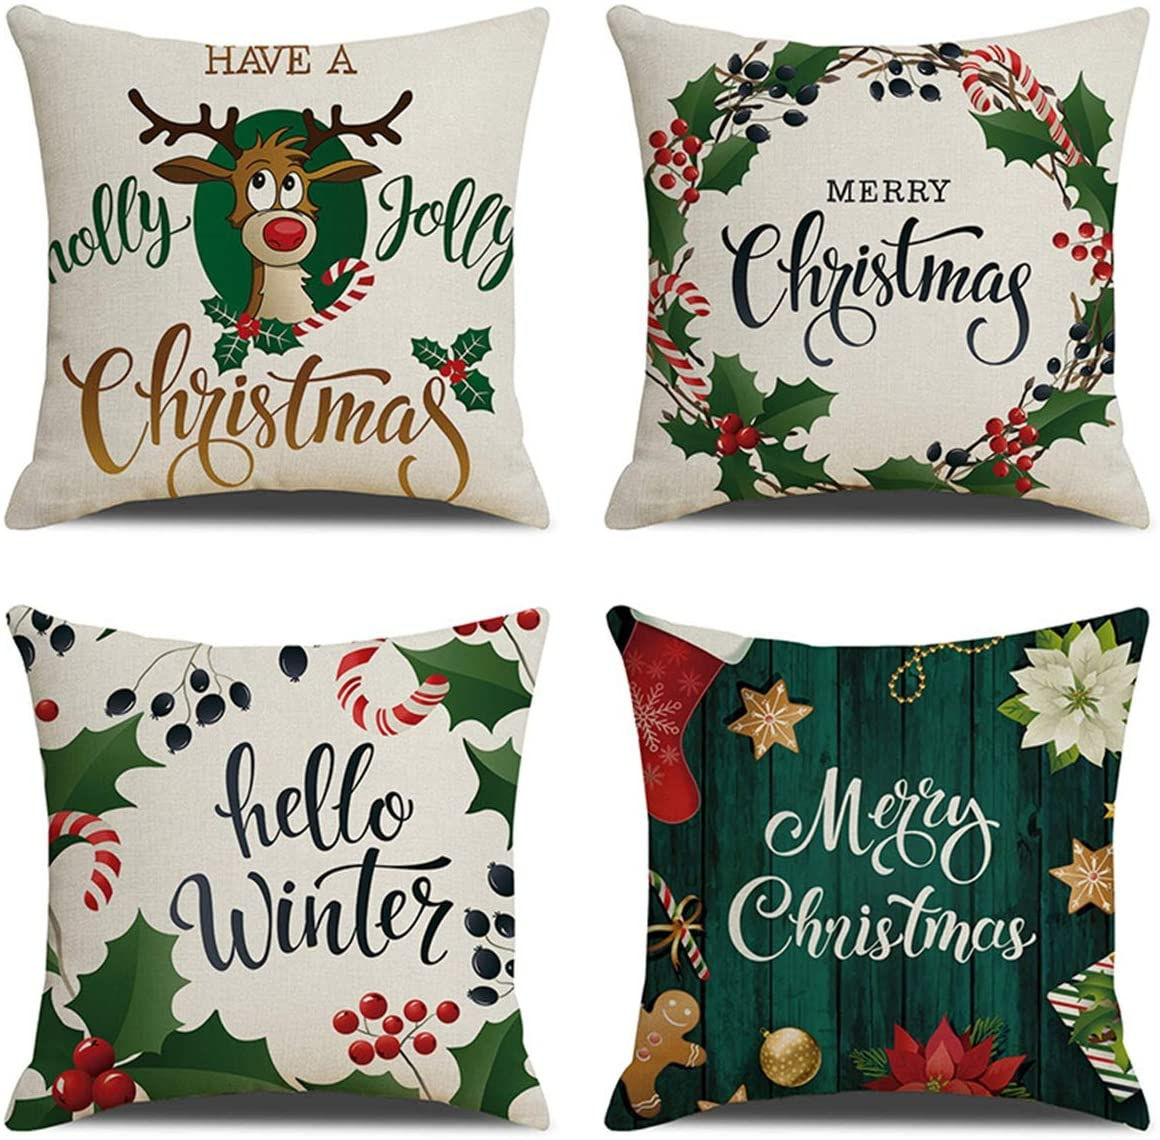 XIECCX Christmas Throw Pillow Covers 18x18 Set of 4 Outdoor Pillowcases Winter Home Decorative Pillows for Couch Sofa Bed Breathable Linen with Hidden Zipper(Christmas Elk)